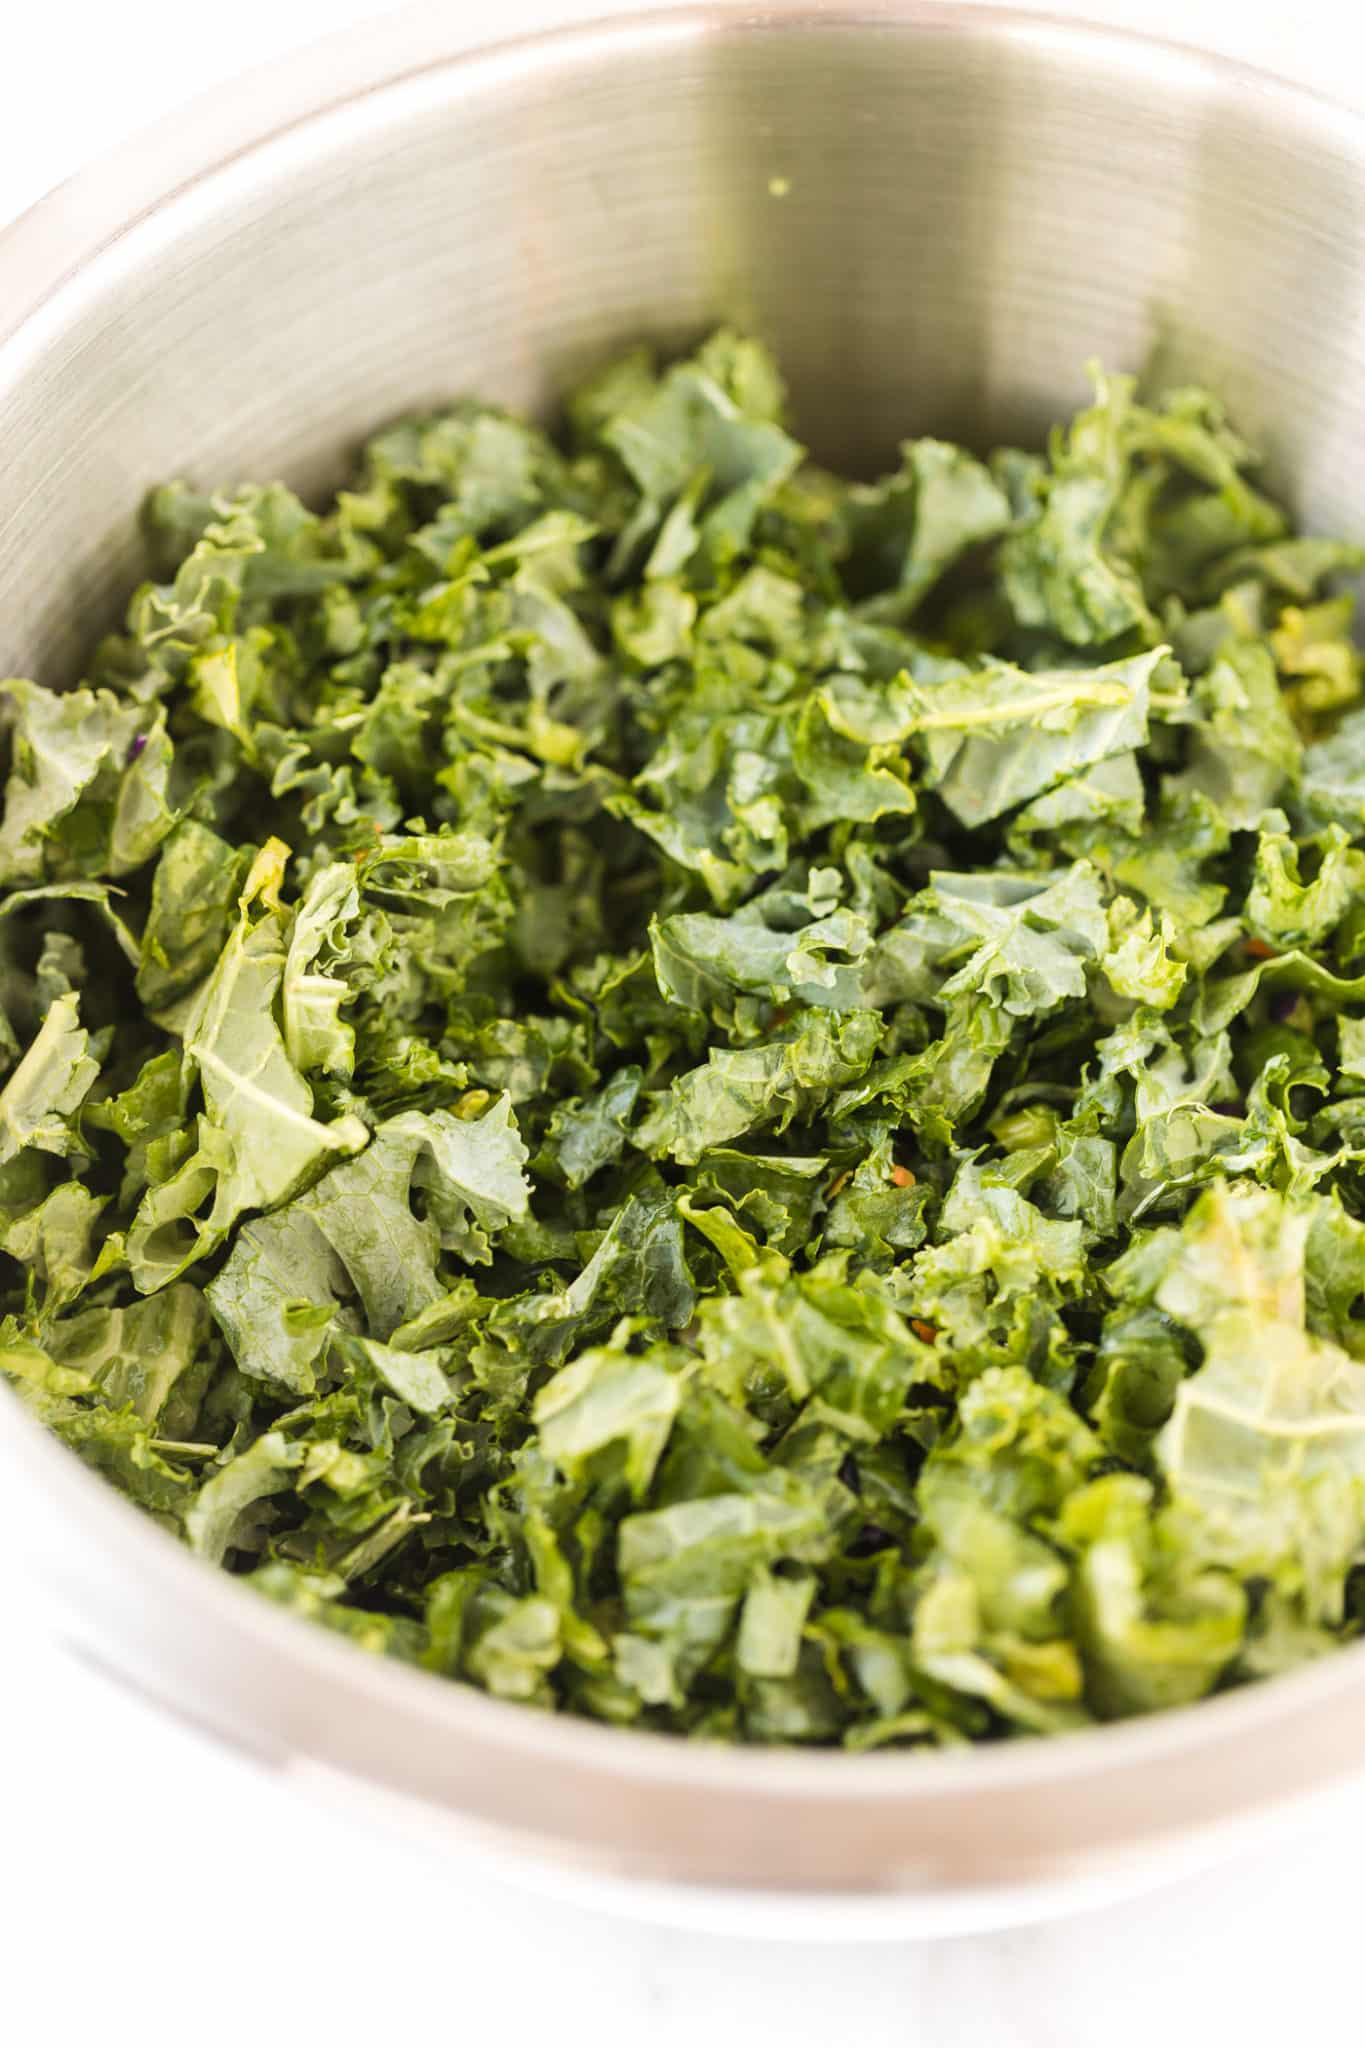 shredded green kale in a mixing bowl